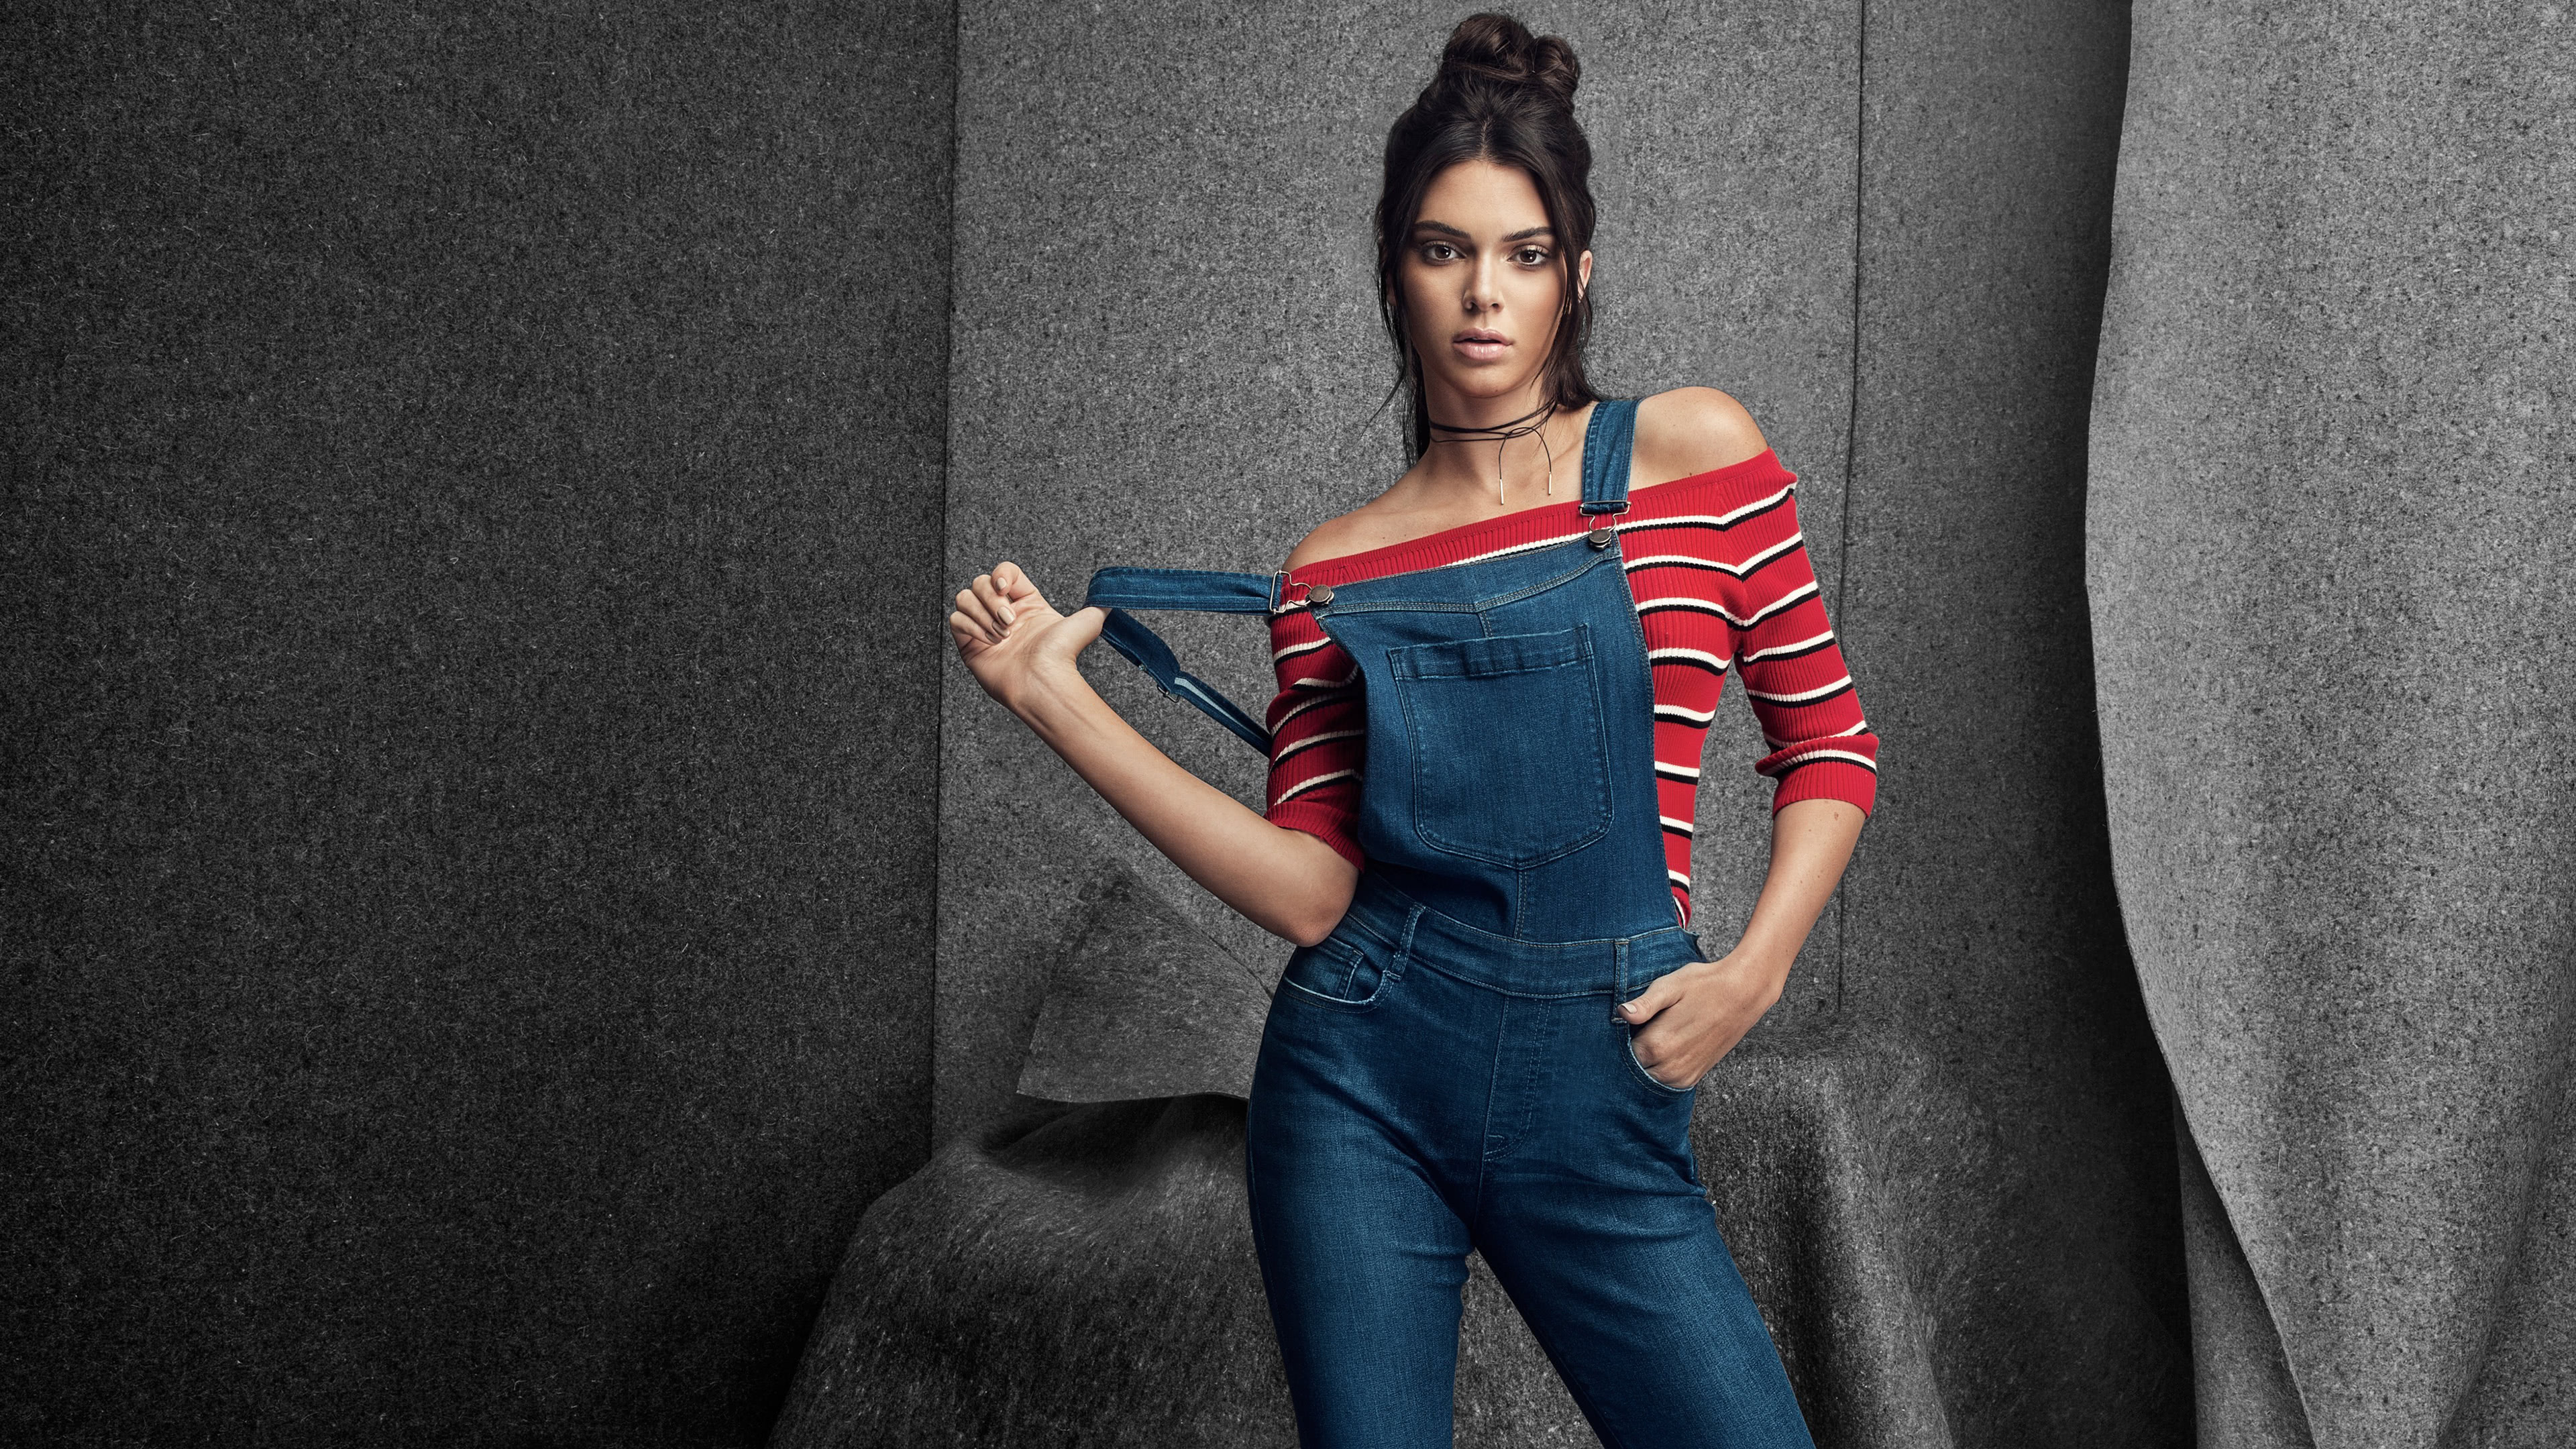 kendall jenner overalls photoshoot uhd 4k wallpaper